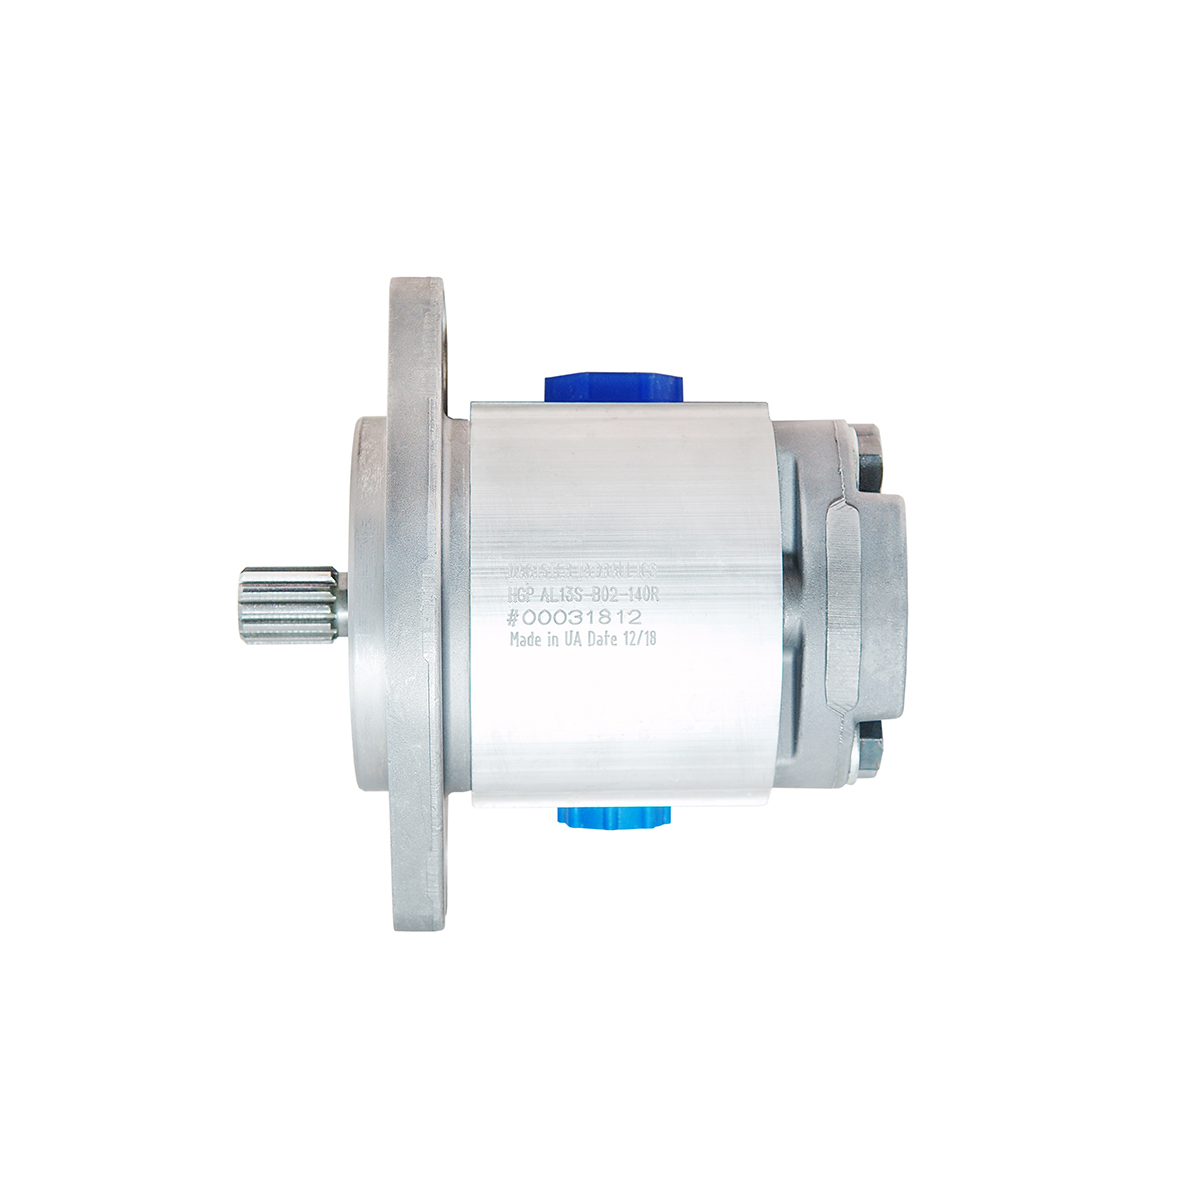 0.27 CID hydraulic gear pump, 9 tooth spline shaft counter-clockwise gear pump | Magister Hydraulics